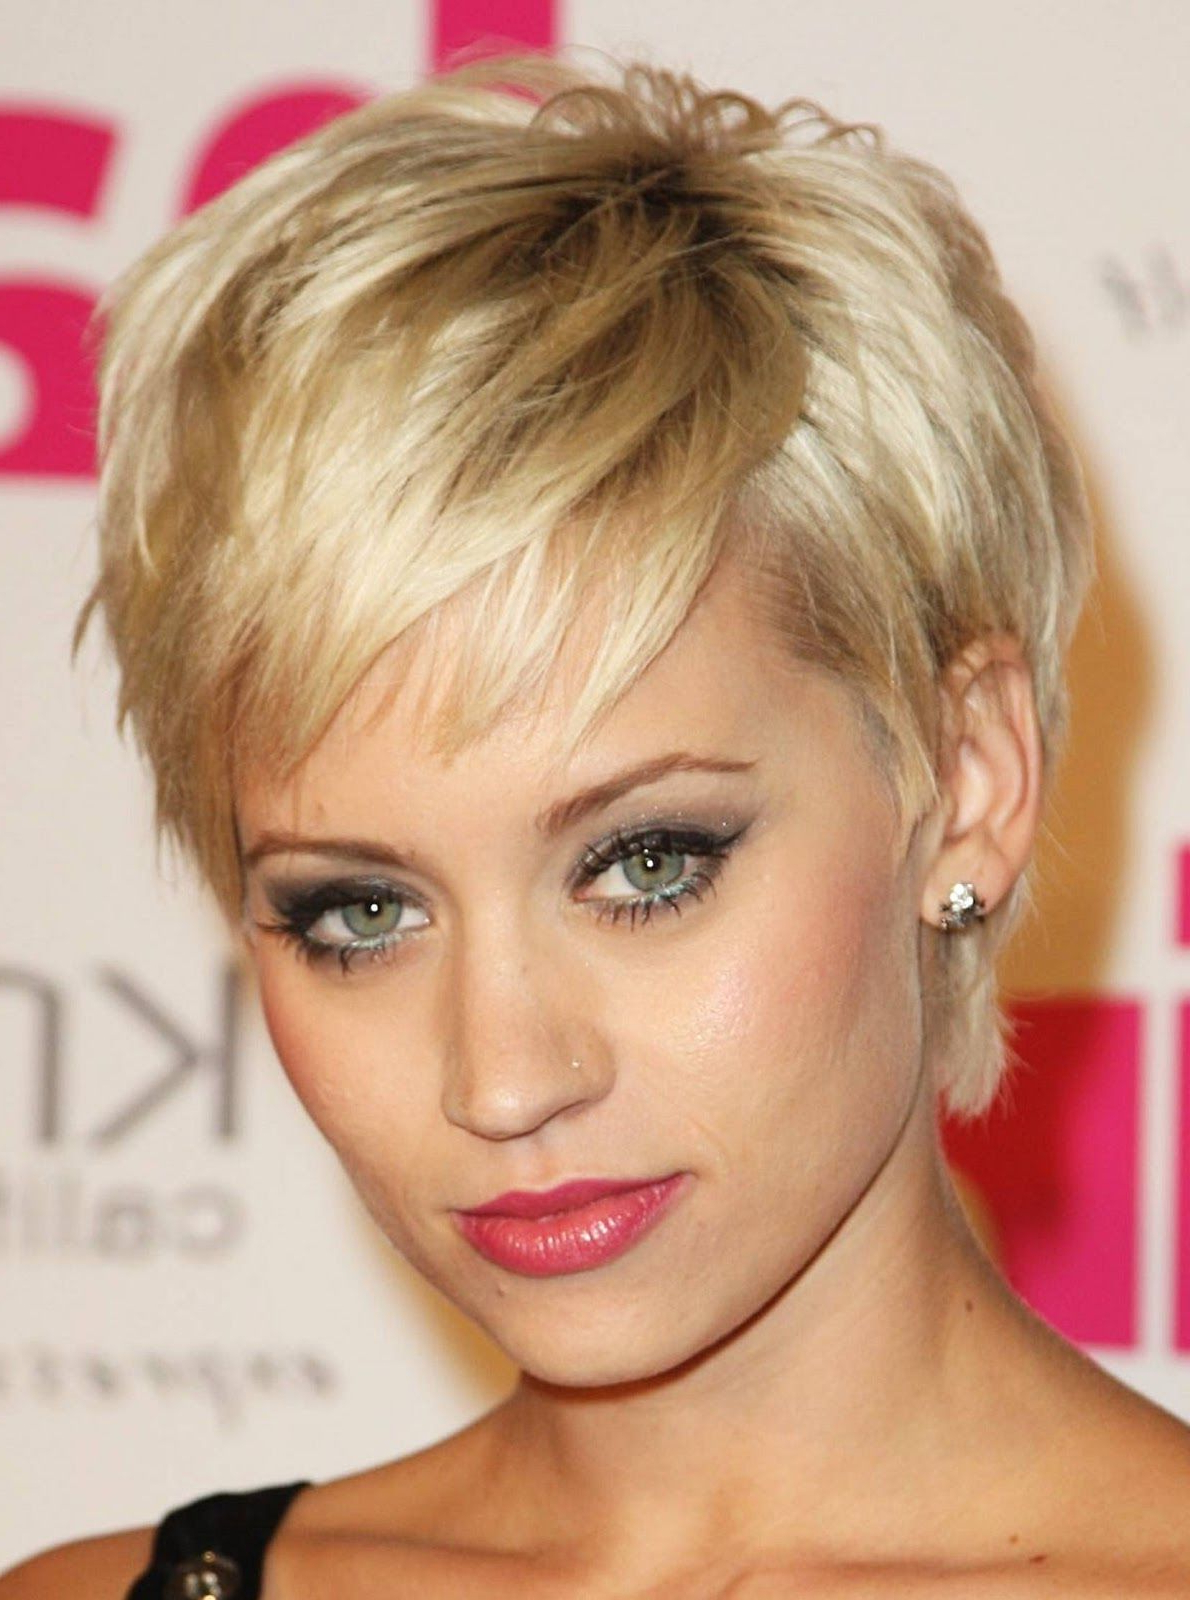 Easy Maintenance Haircuts For Women   Short Hairstyles For Women Regarding No Maintenance Short Haircuts (View 5 of 25)